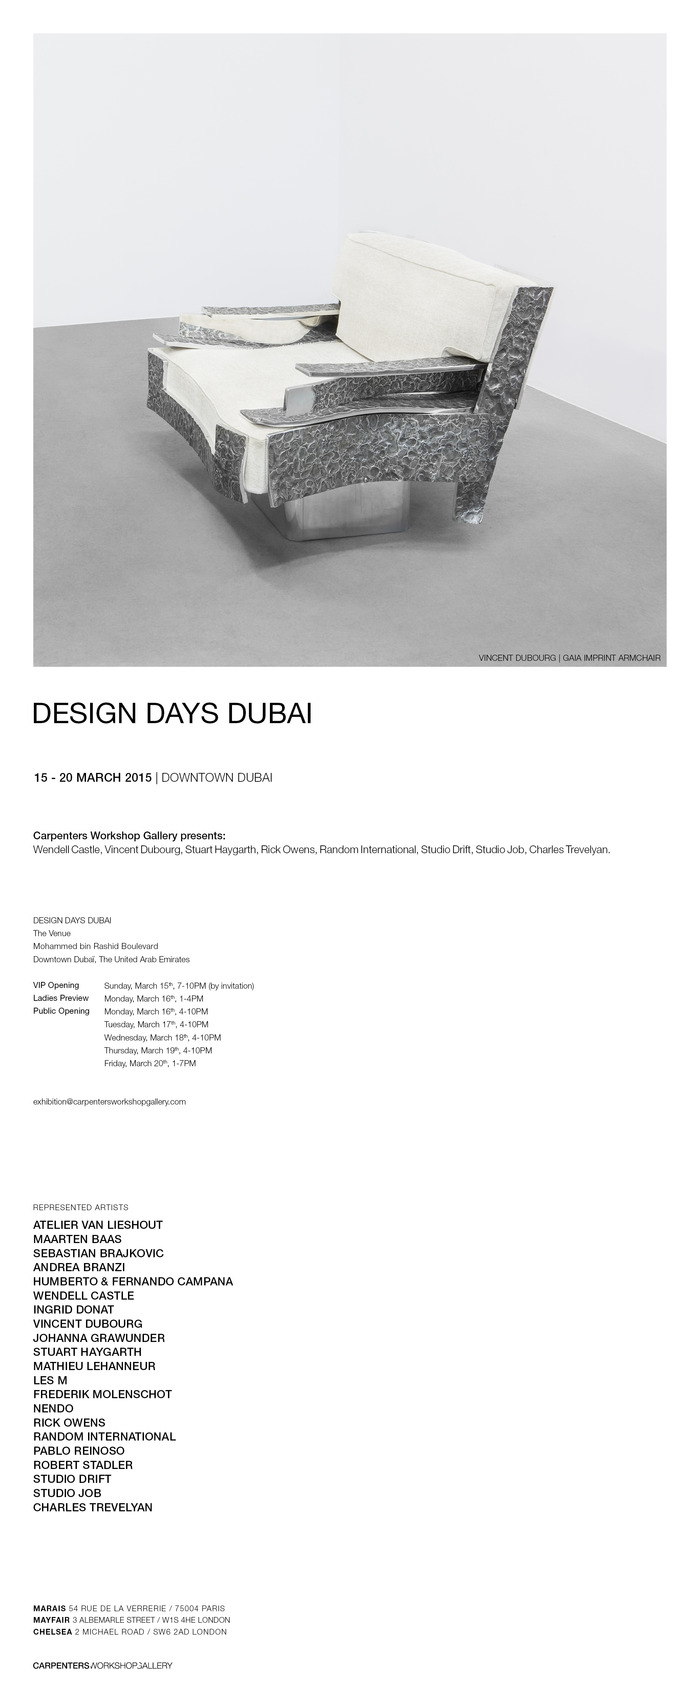 asvof-2015-03-15-_design_days_dubai_carpenters_workshop_gallery_15_-_20_march_2015-diane_pernet-356053451.jpg